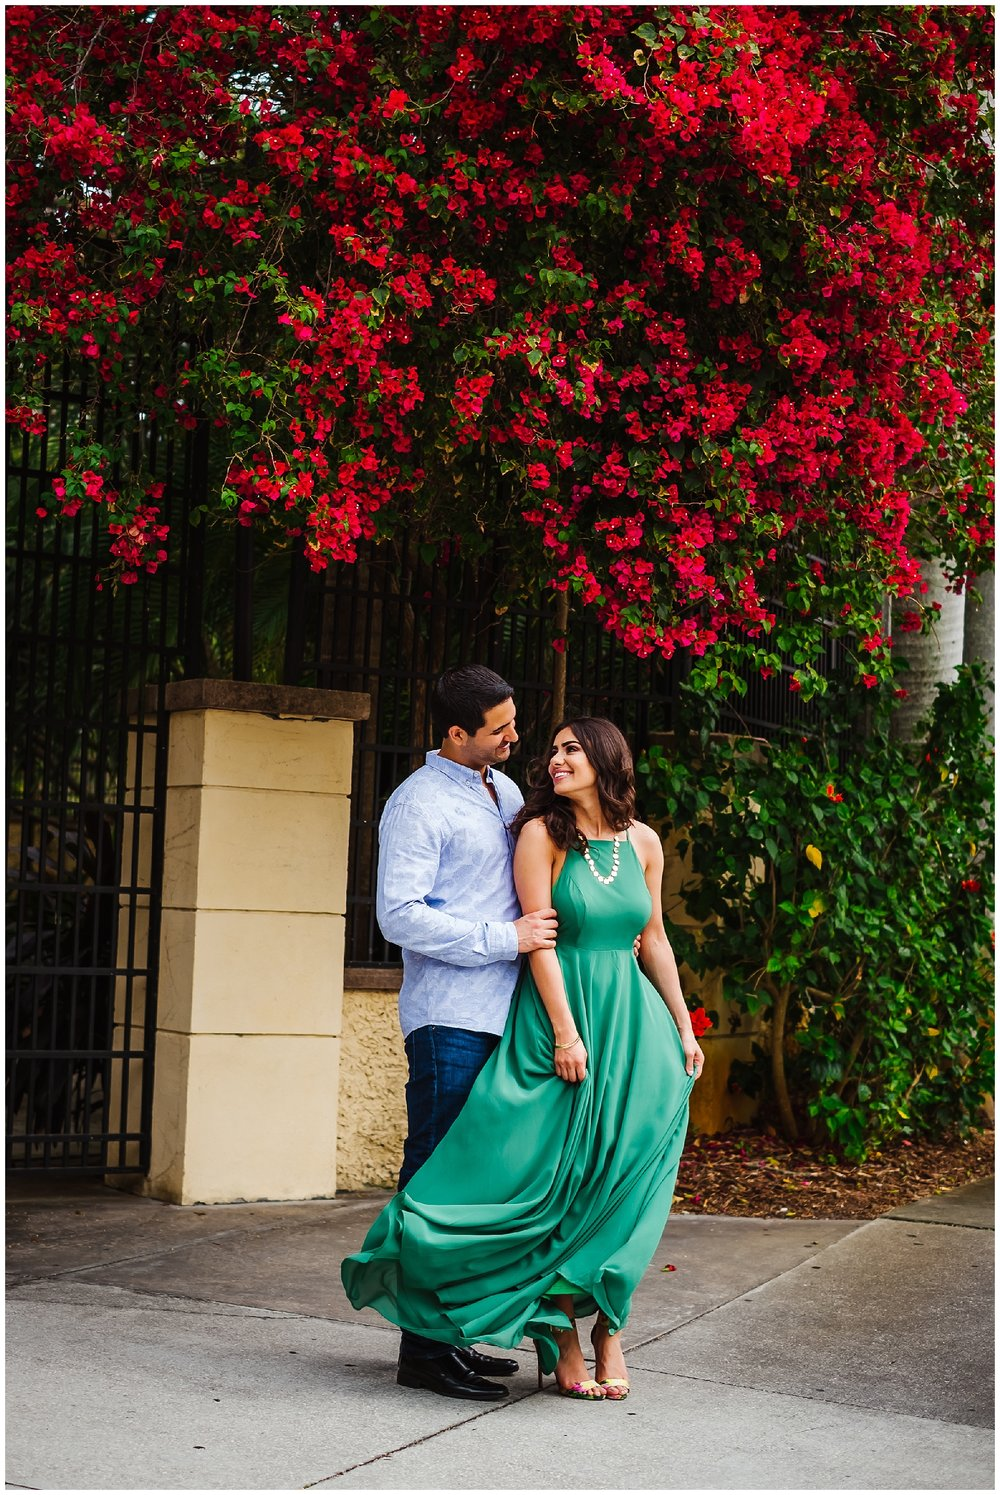 sunken-gardens-engagement-session-photos-teal-flamingos_0020.jpg